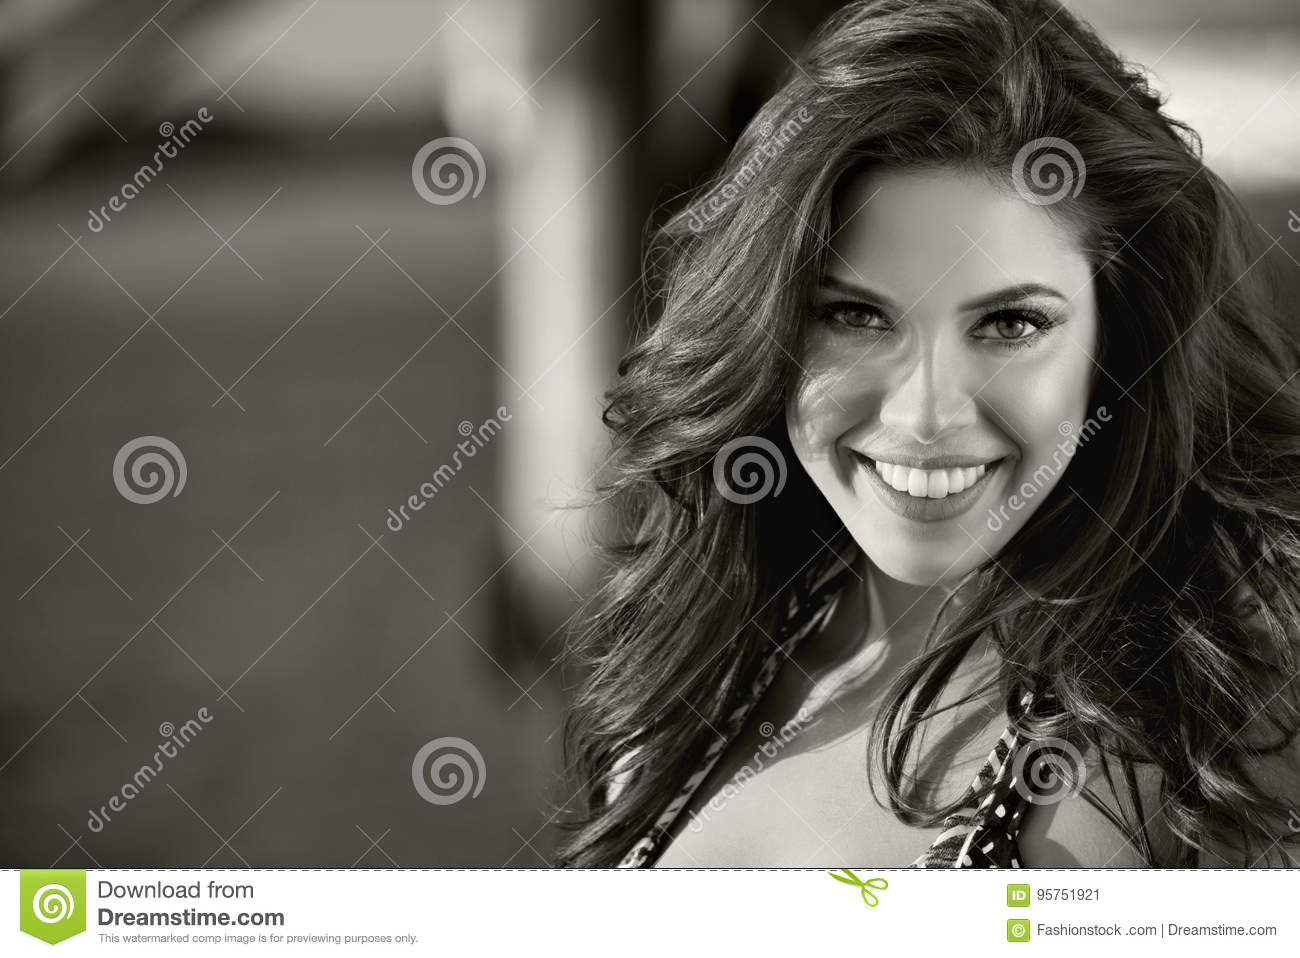 Black and white portrait of gorgeous smiling girl looking at camera